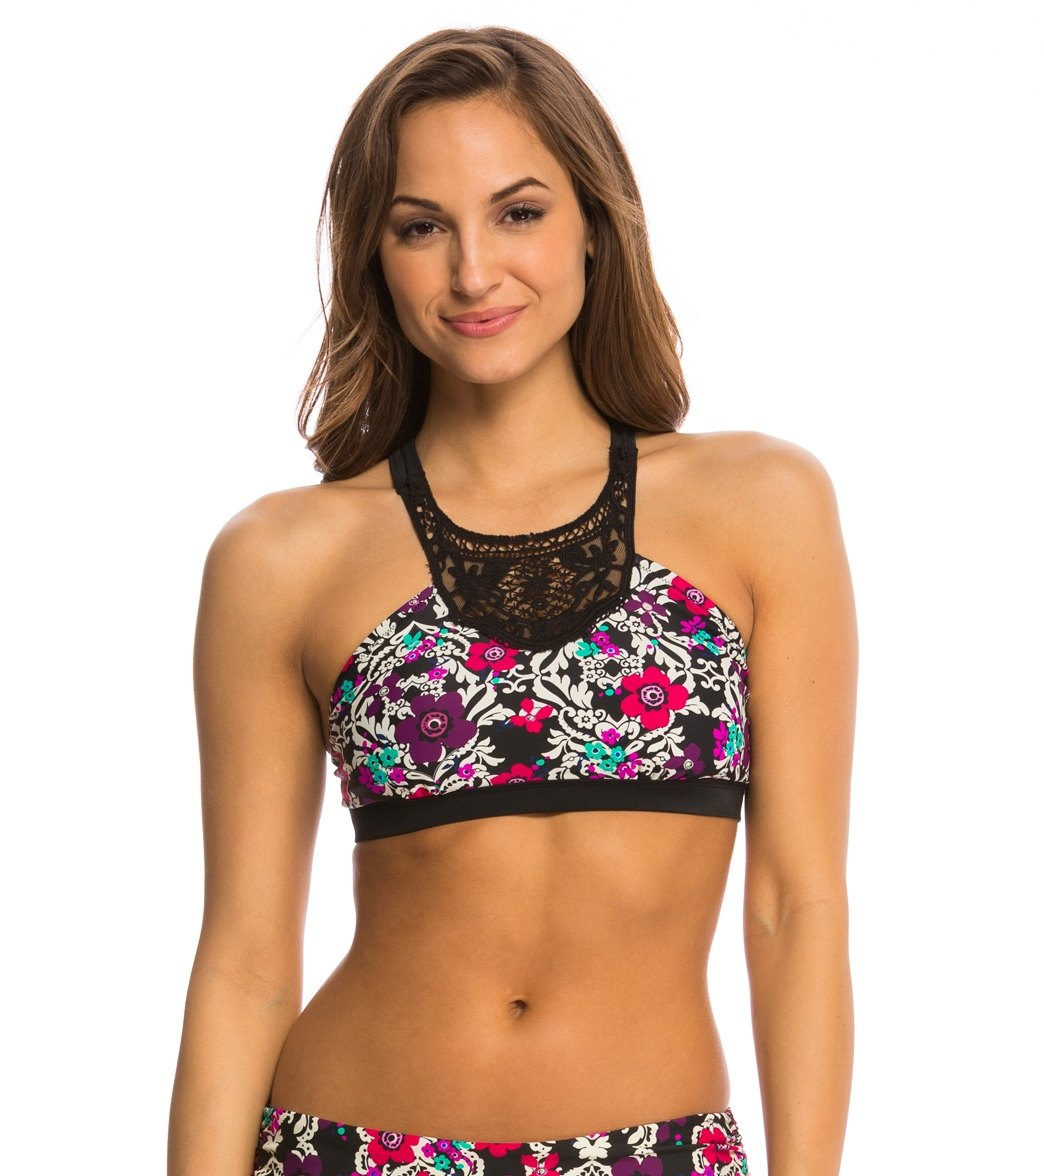 3e9c28127c Jessica Simpson Swimwear It Girl High Neck Lace Bra Bikini Top at  SwimOutlet.com - Free Shipping